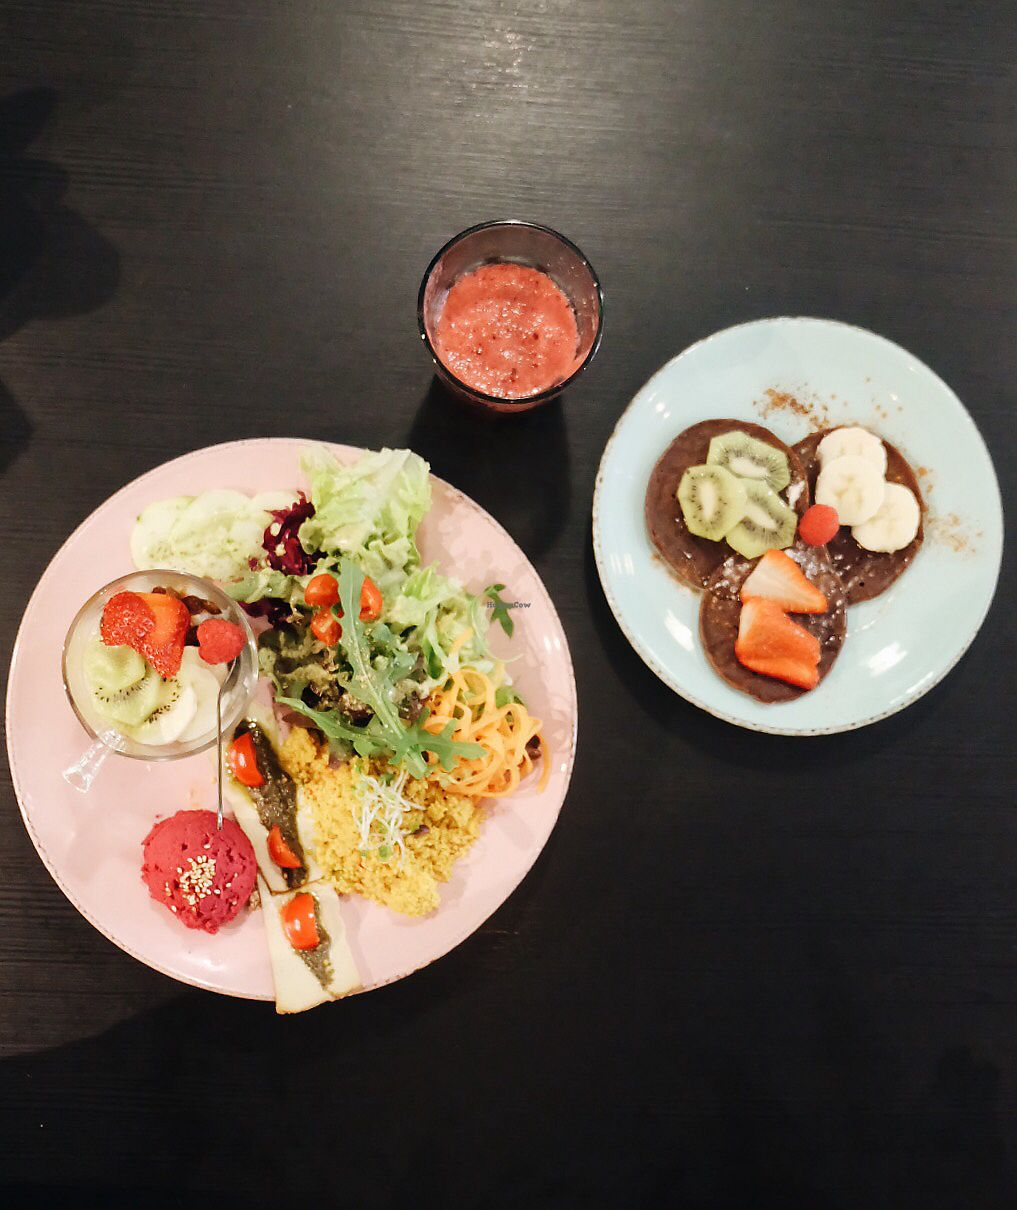 """Photo of Aloha Cafe  by <a href=""""/members/profile/lenneek"""">lenneek</a> <br/>Sunday brunch <br/> May 7, 2018  - <a href='/contact/abuse/image/90124/396511'>Report</a>"""